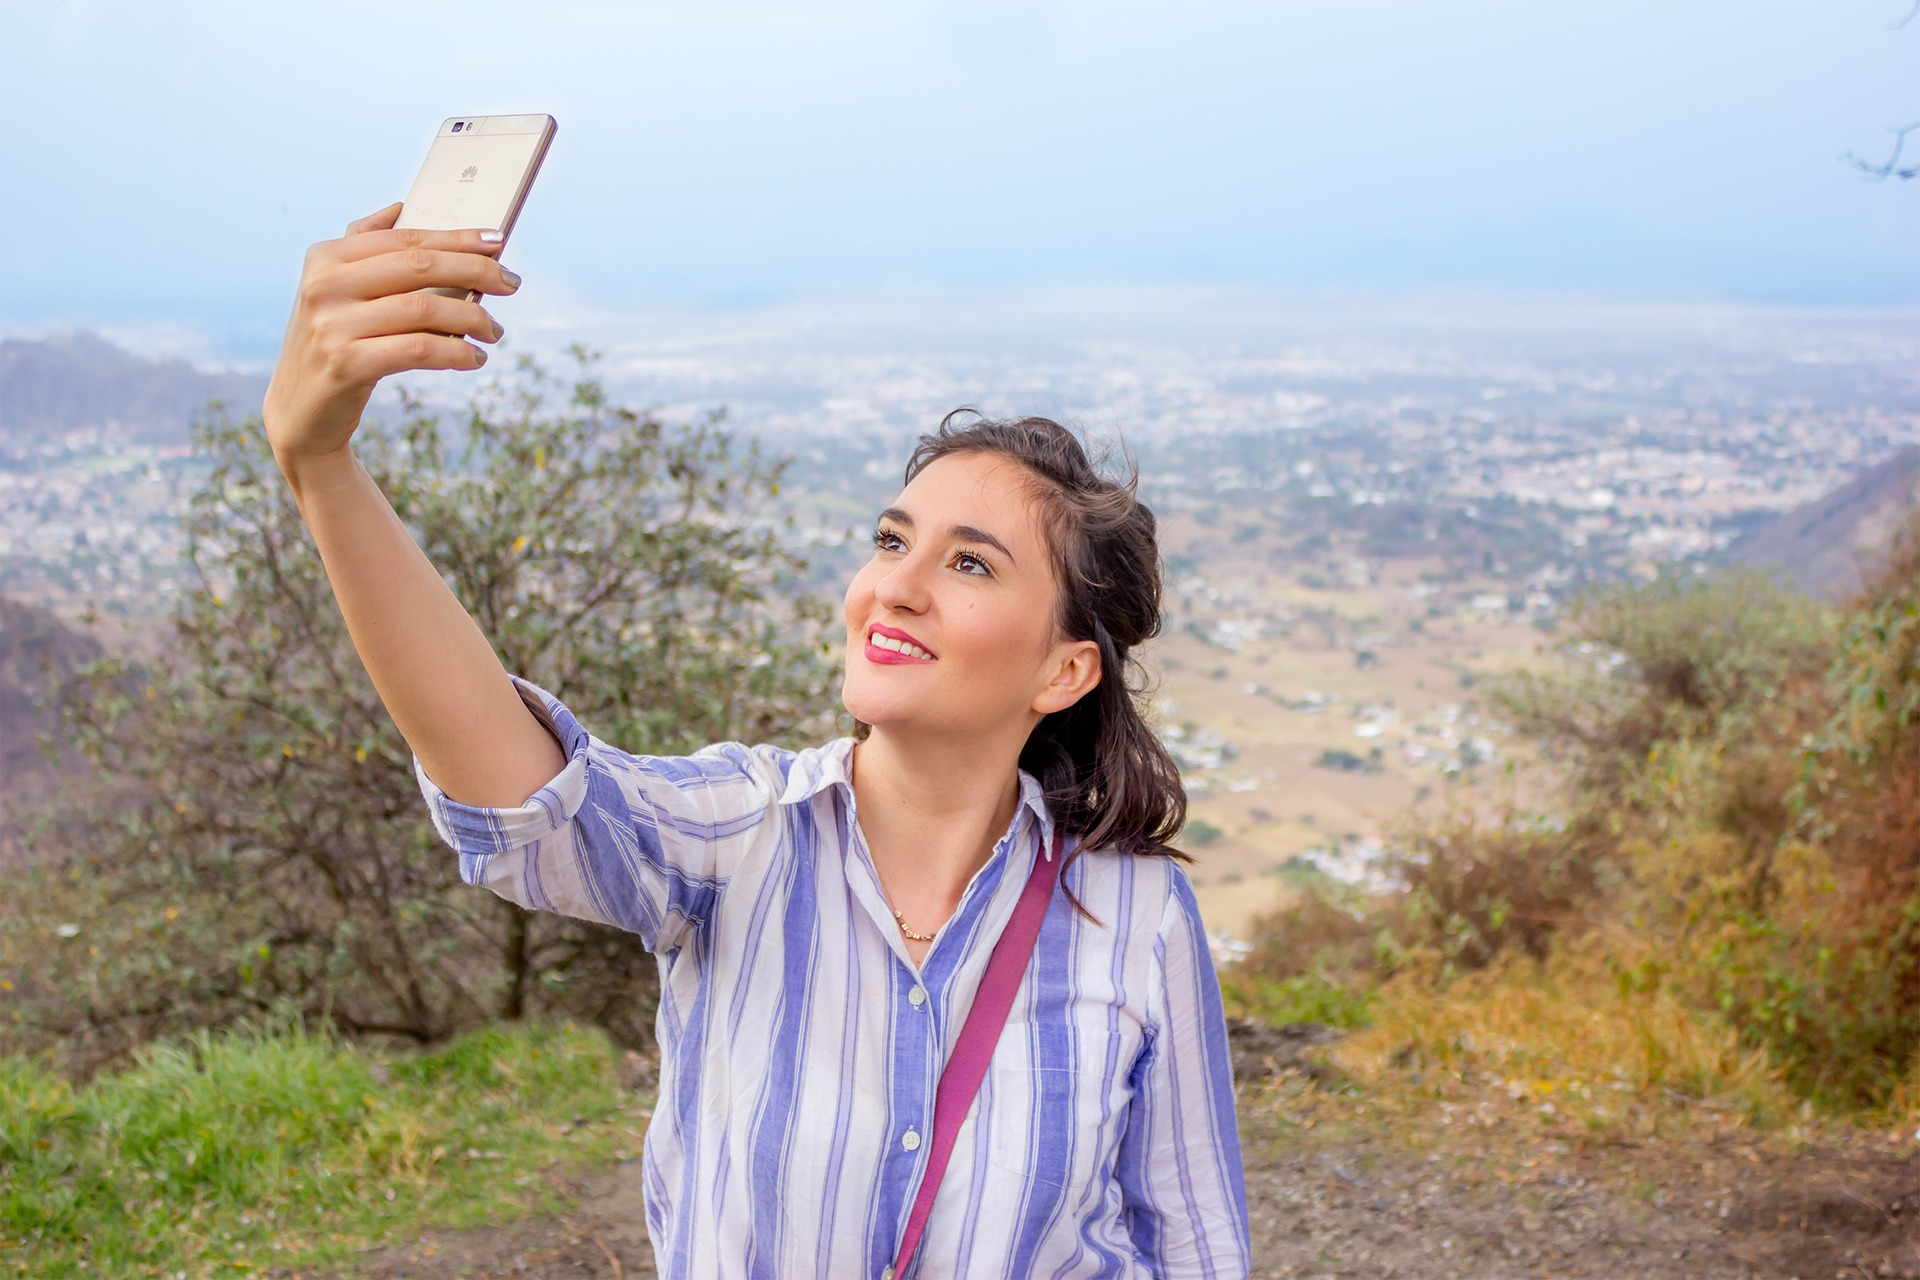 Woman smiling on hill in summer recording selfie video on phone